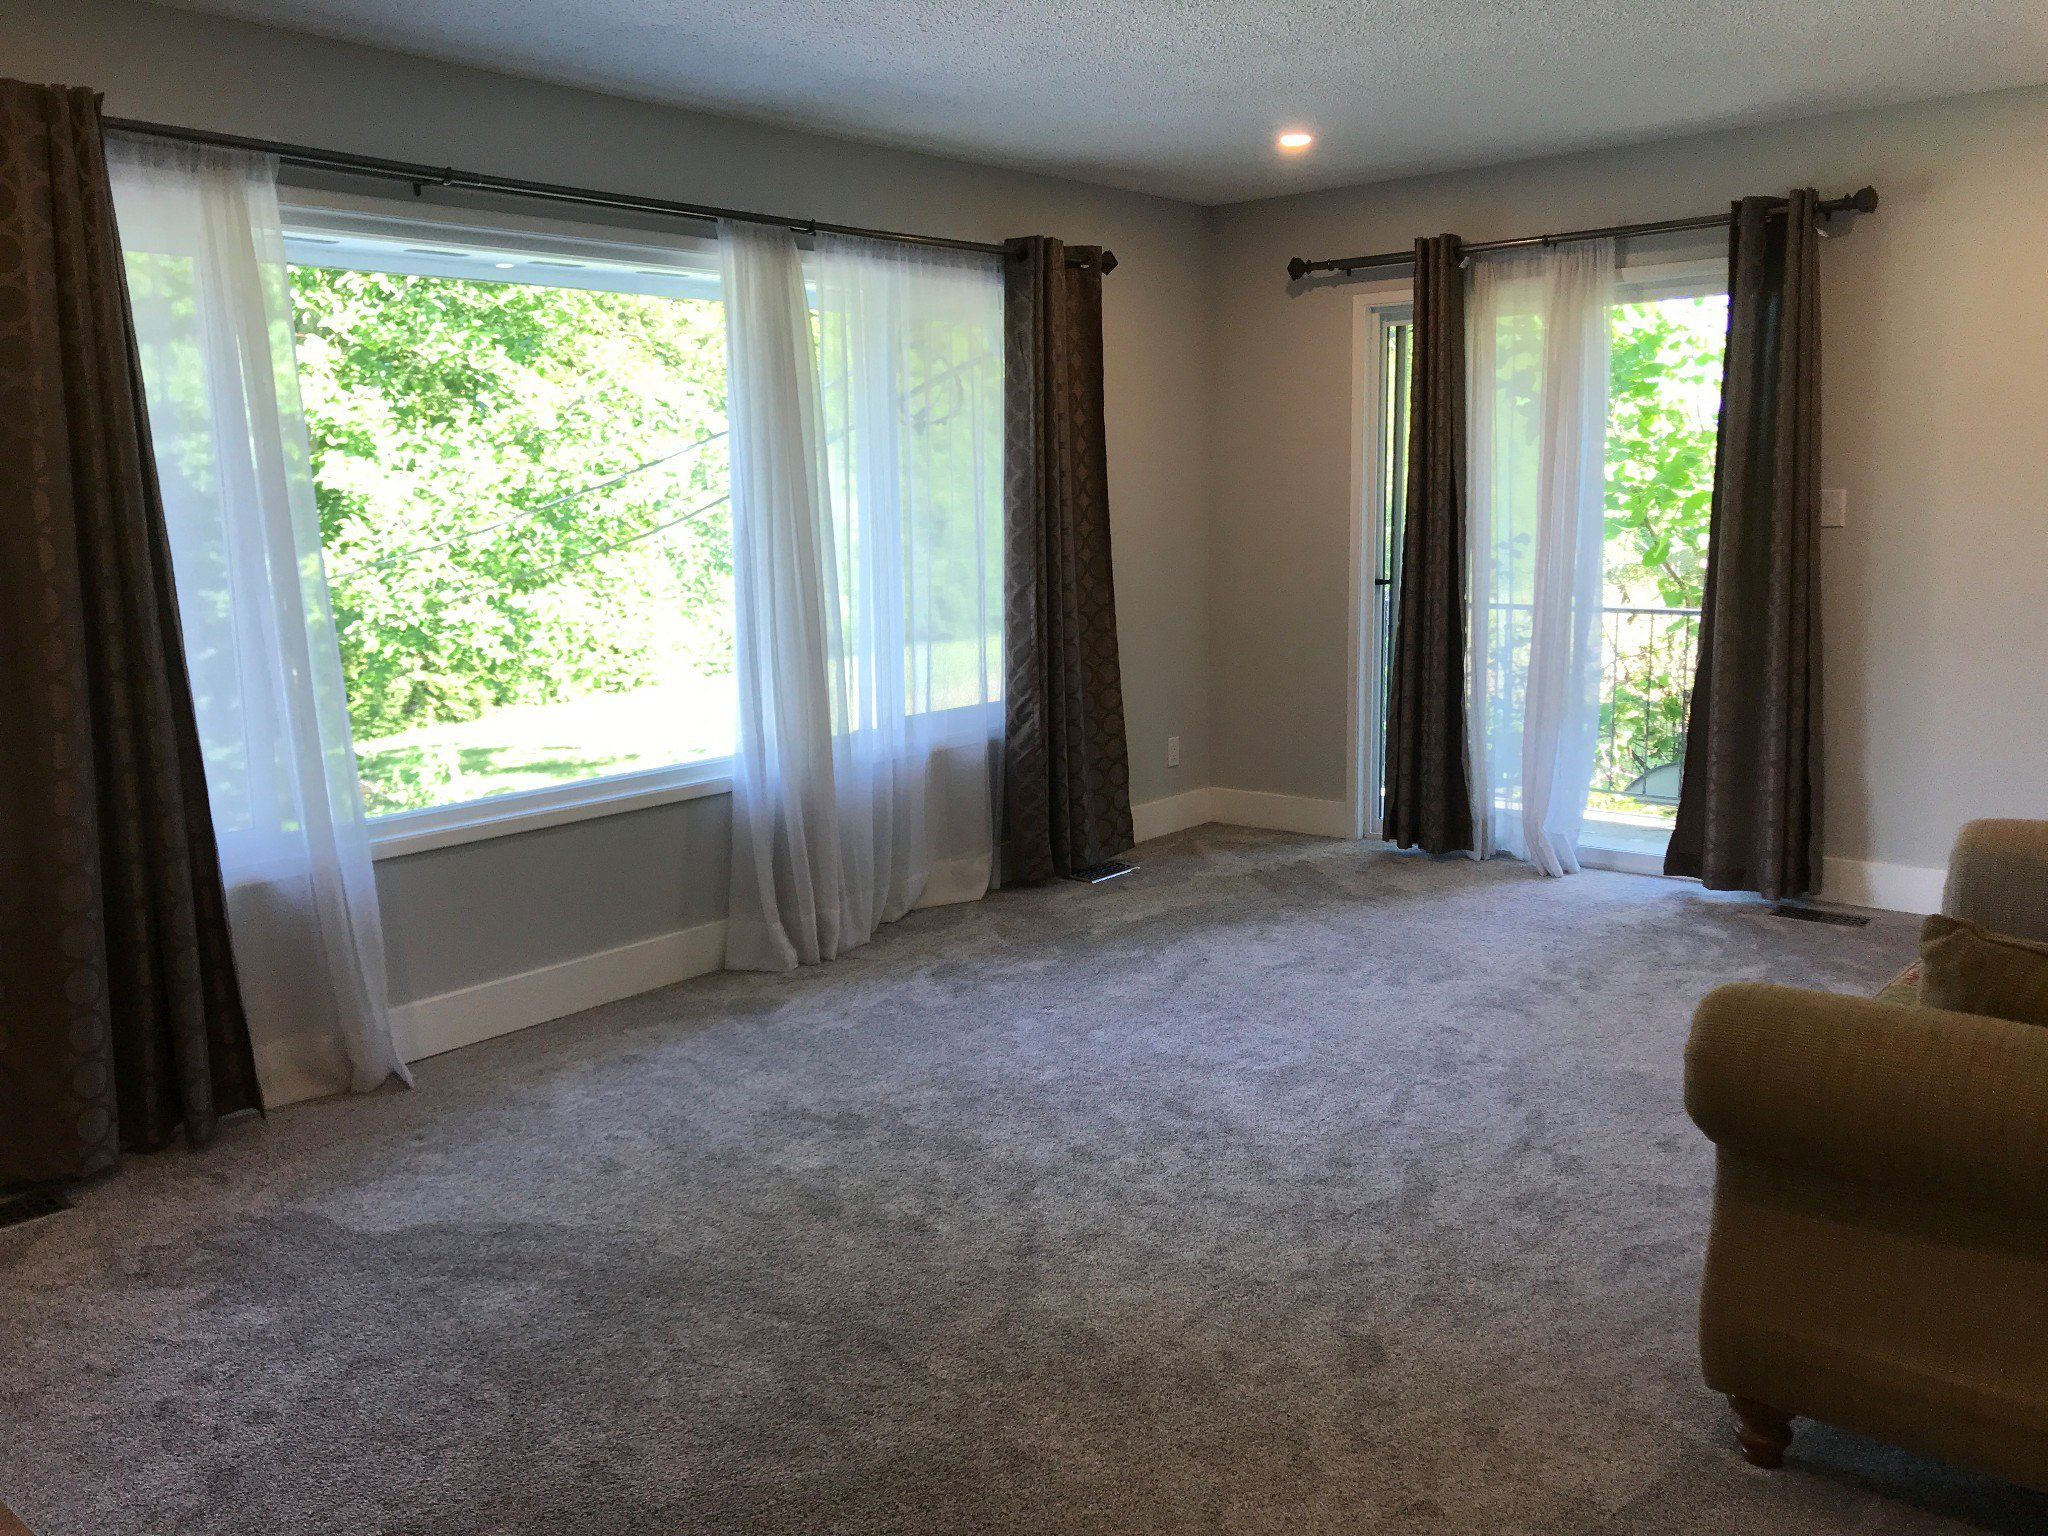 Photo 5: Photos: 34694 Dewdney Trunk Rd. in Mission: House for rent